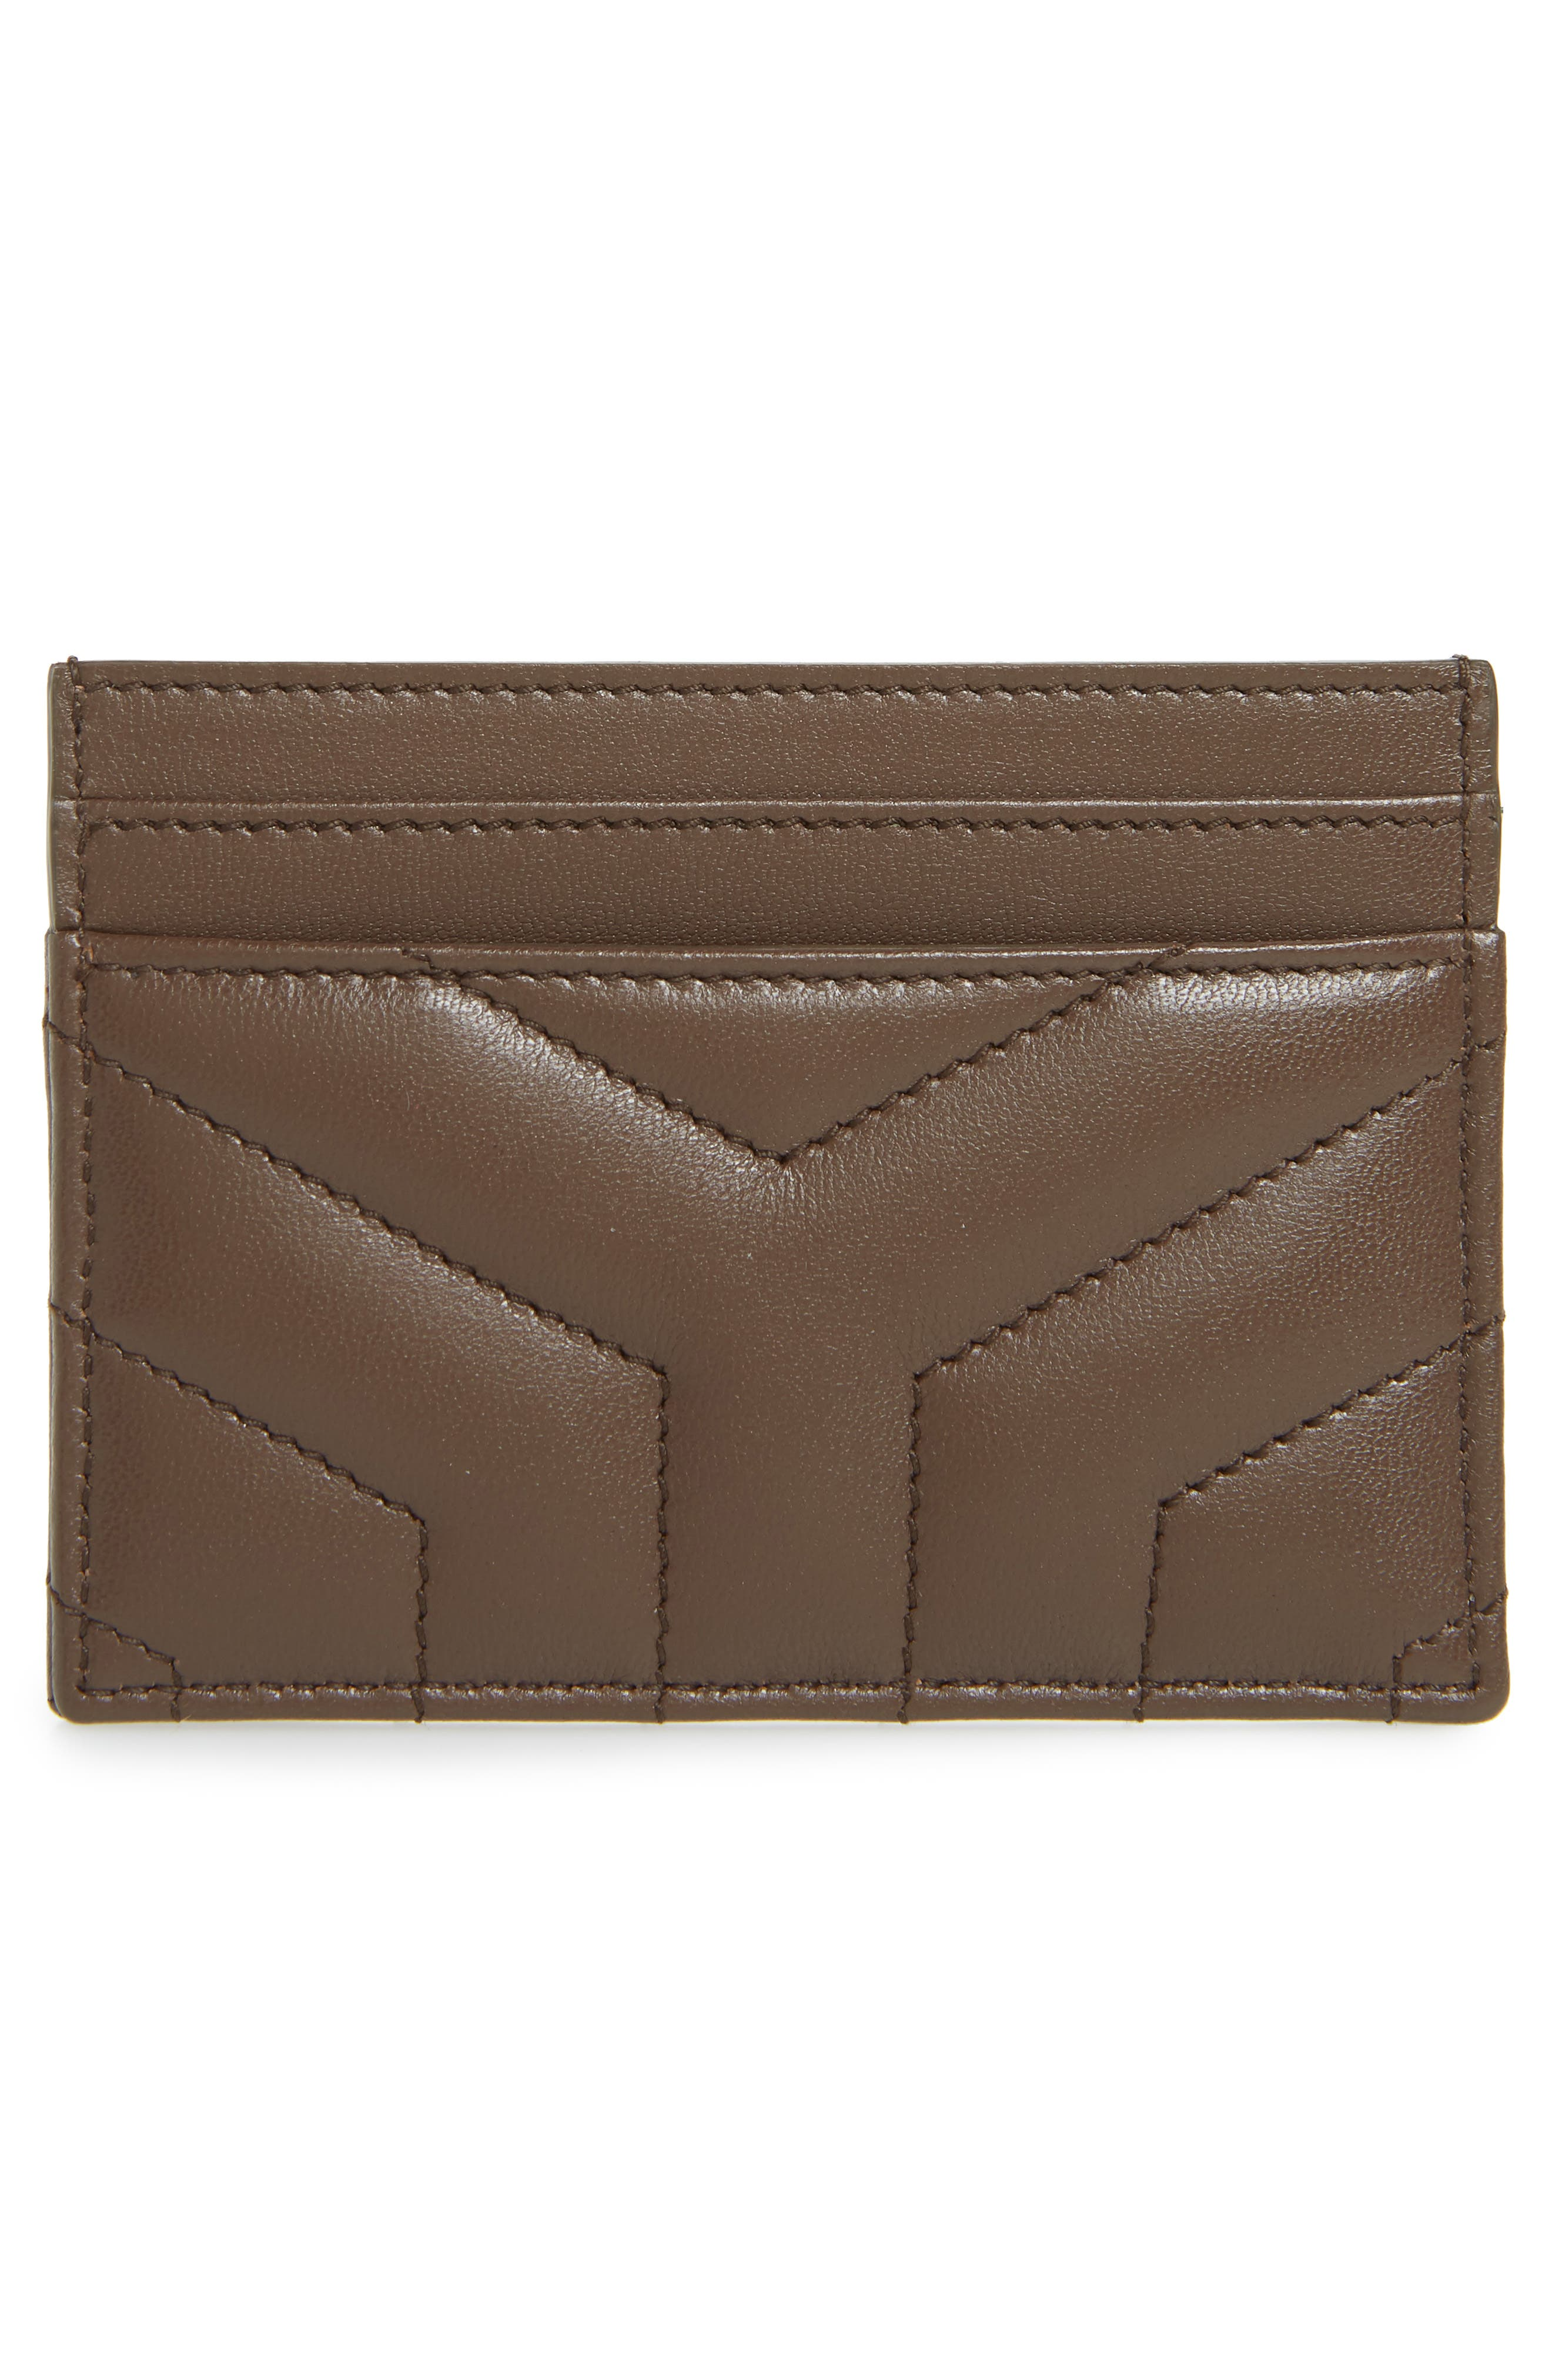 SAINT LAURENT, Loulou Monogram Quilted Leather Credit Card Case, Alternate thumbnail 2, color, FAGGIO